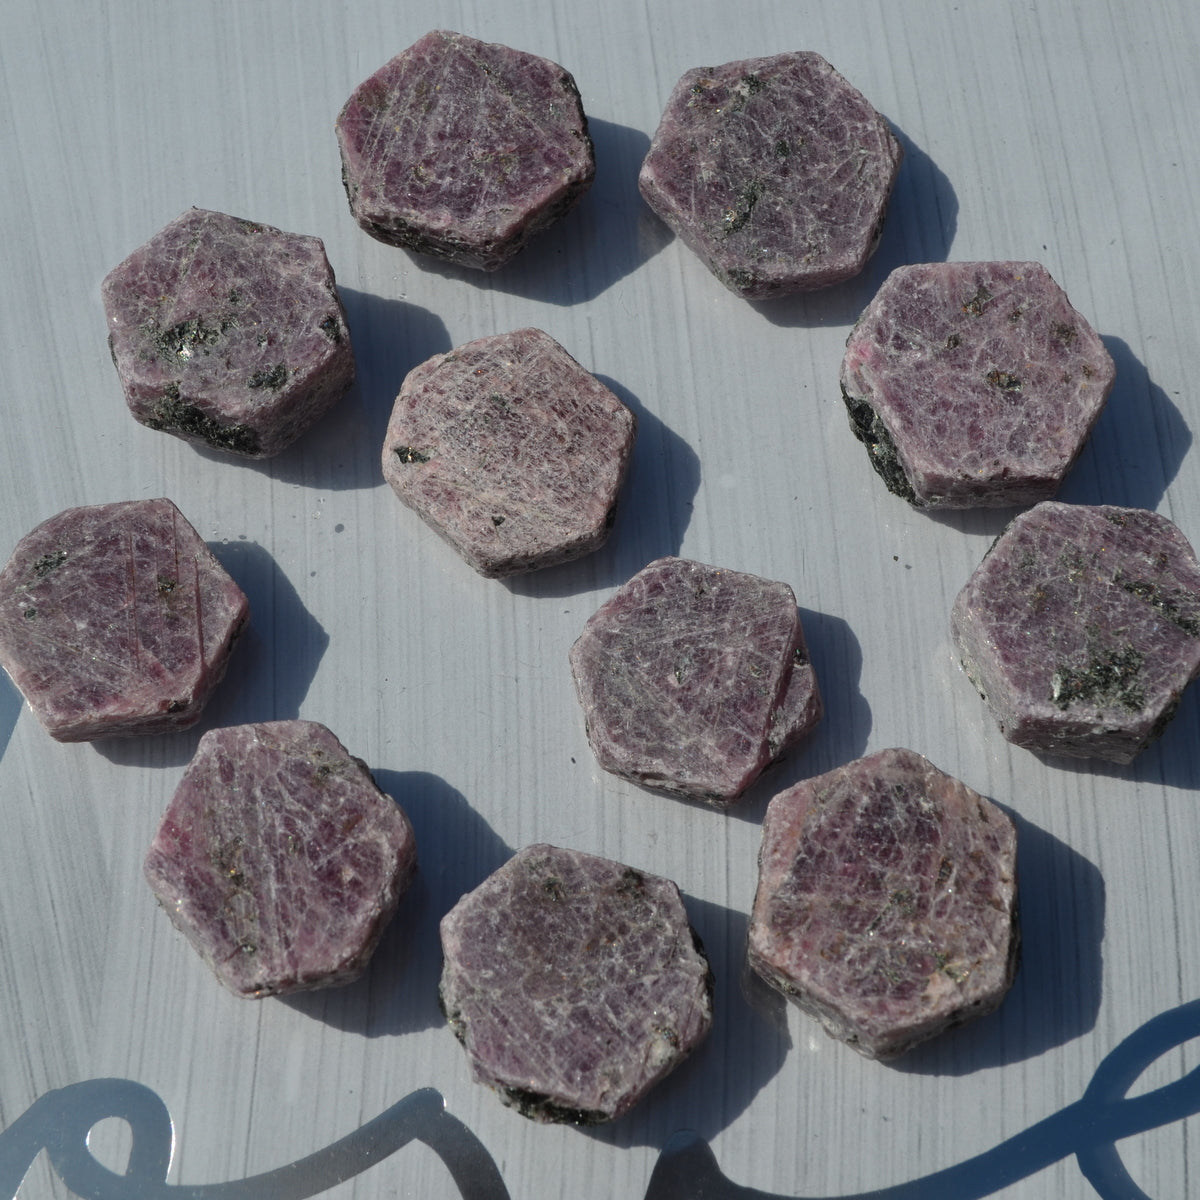 Ruby Natural Each Record Keepers - Passion Enthusiasm Love - Shop Now at Illiom Crystals - Now with Afterpay